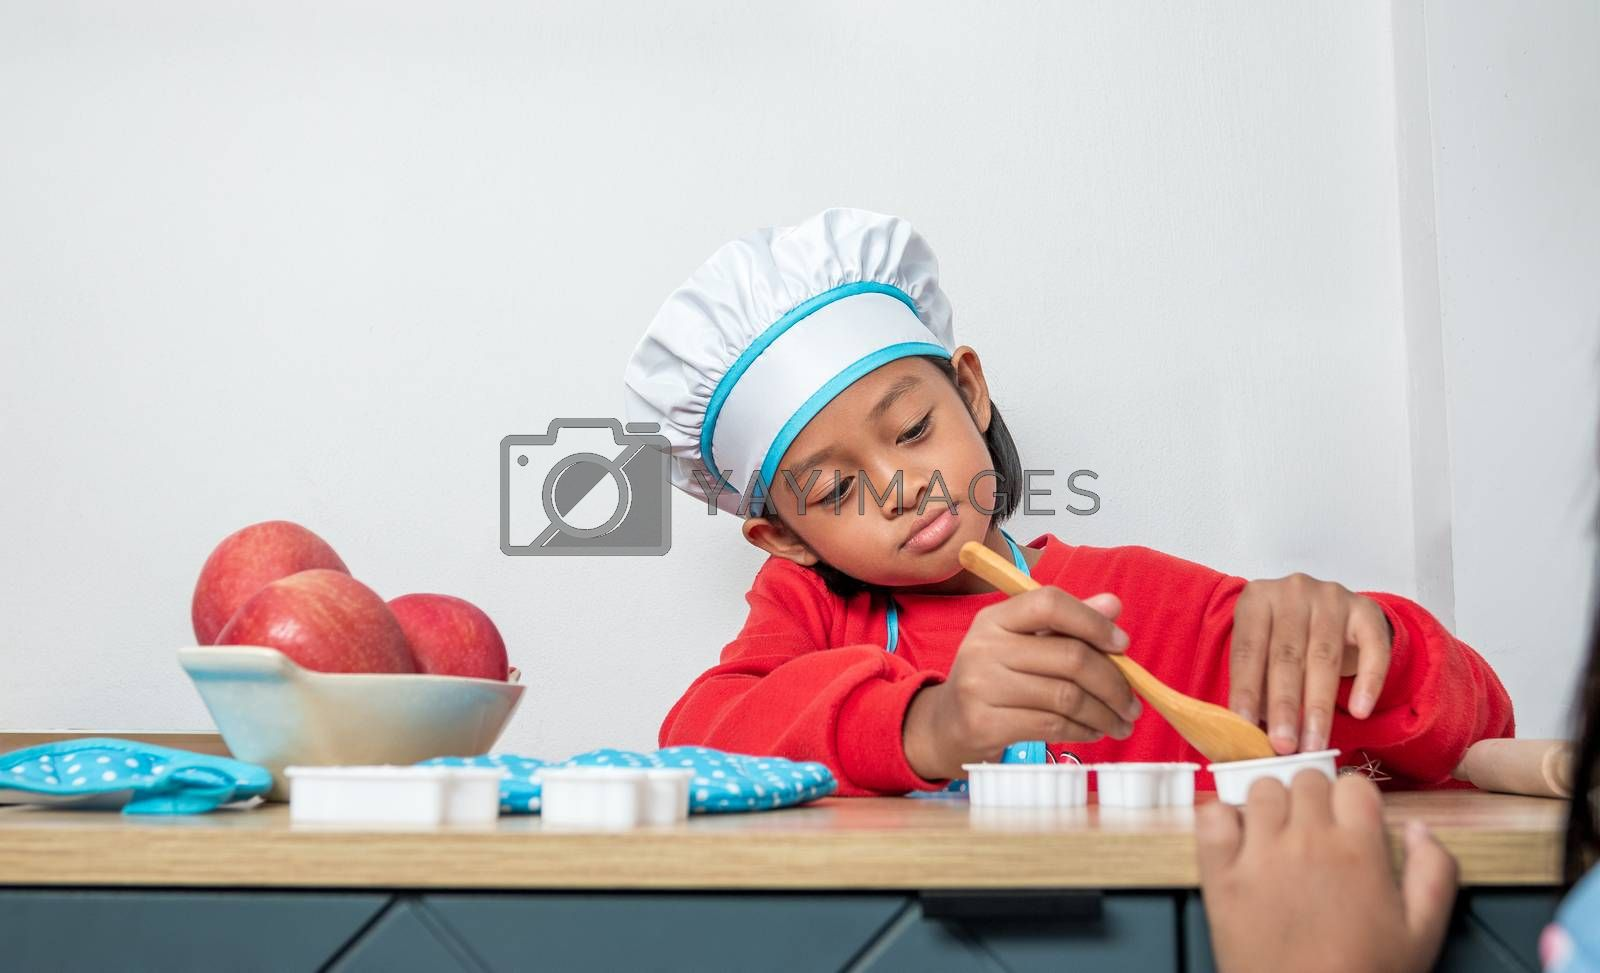 Cute girl in chef uniform and simulated cooking toys in the kitchen counter.